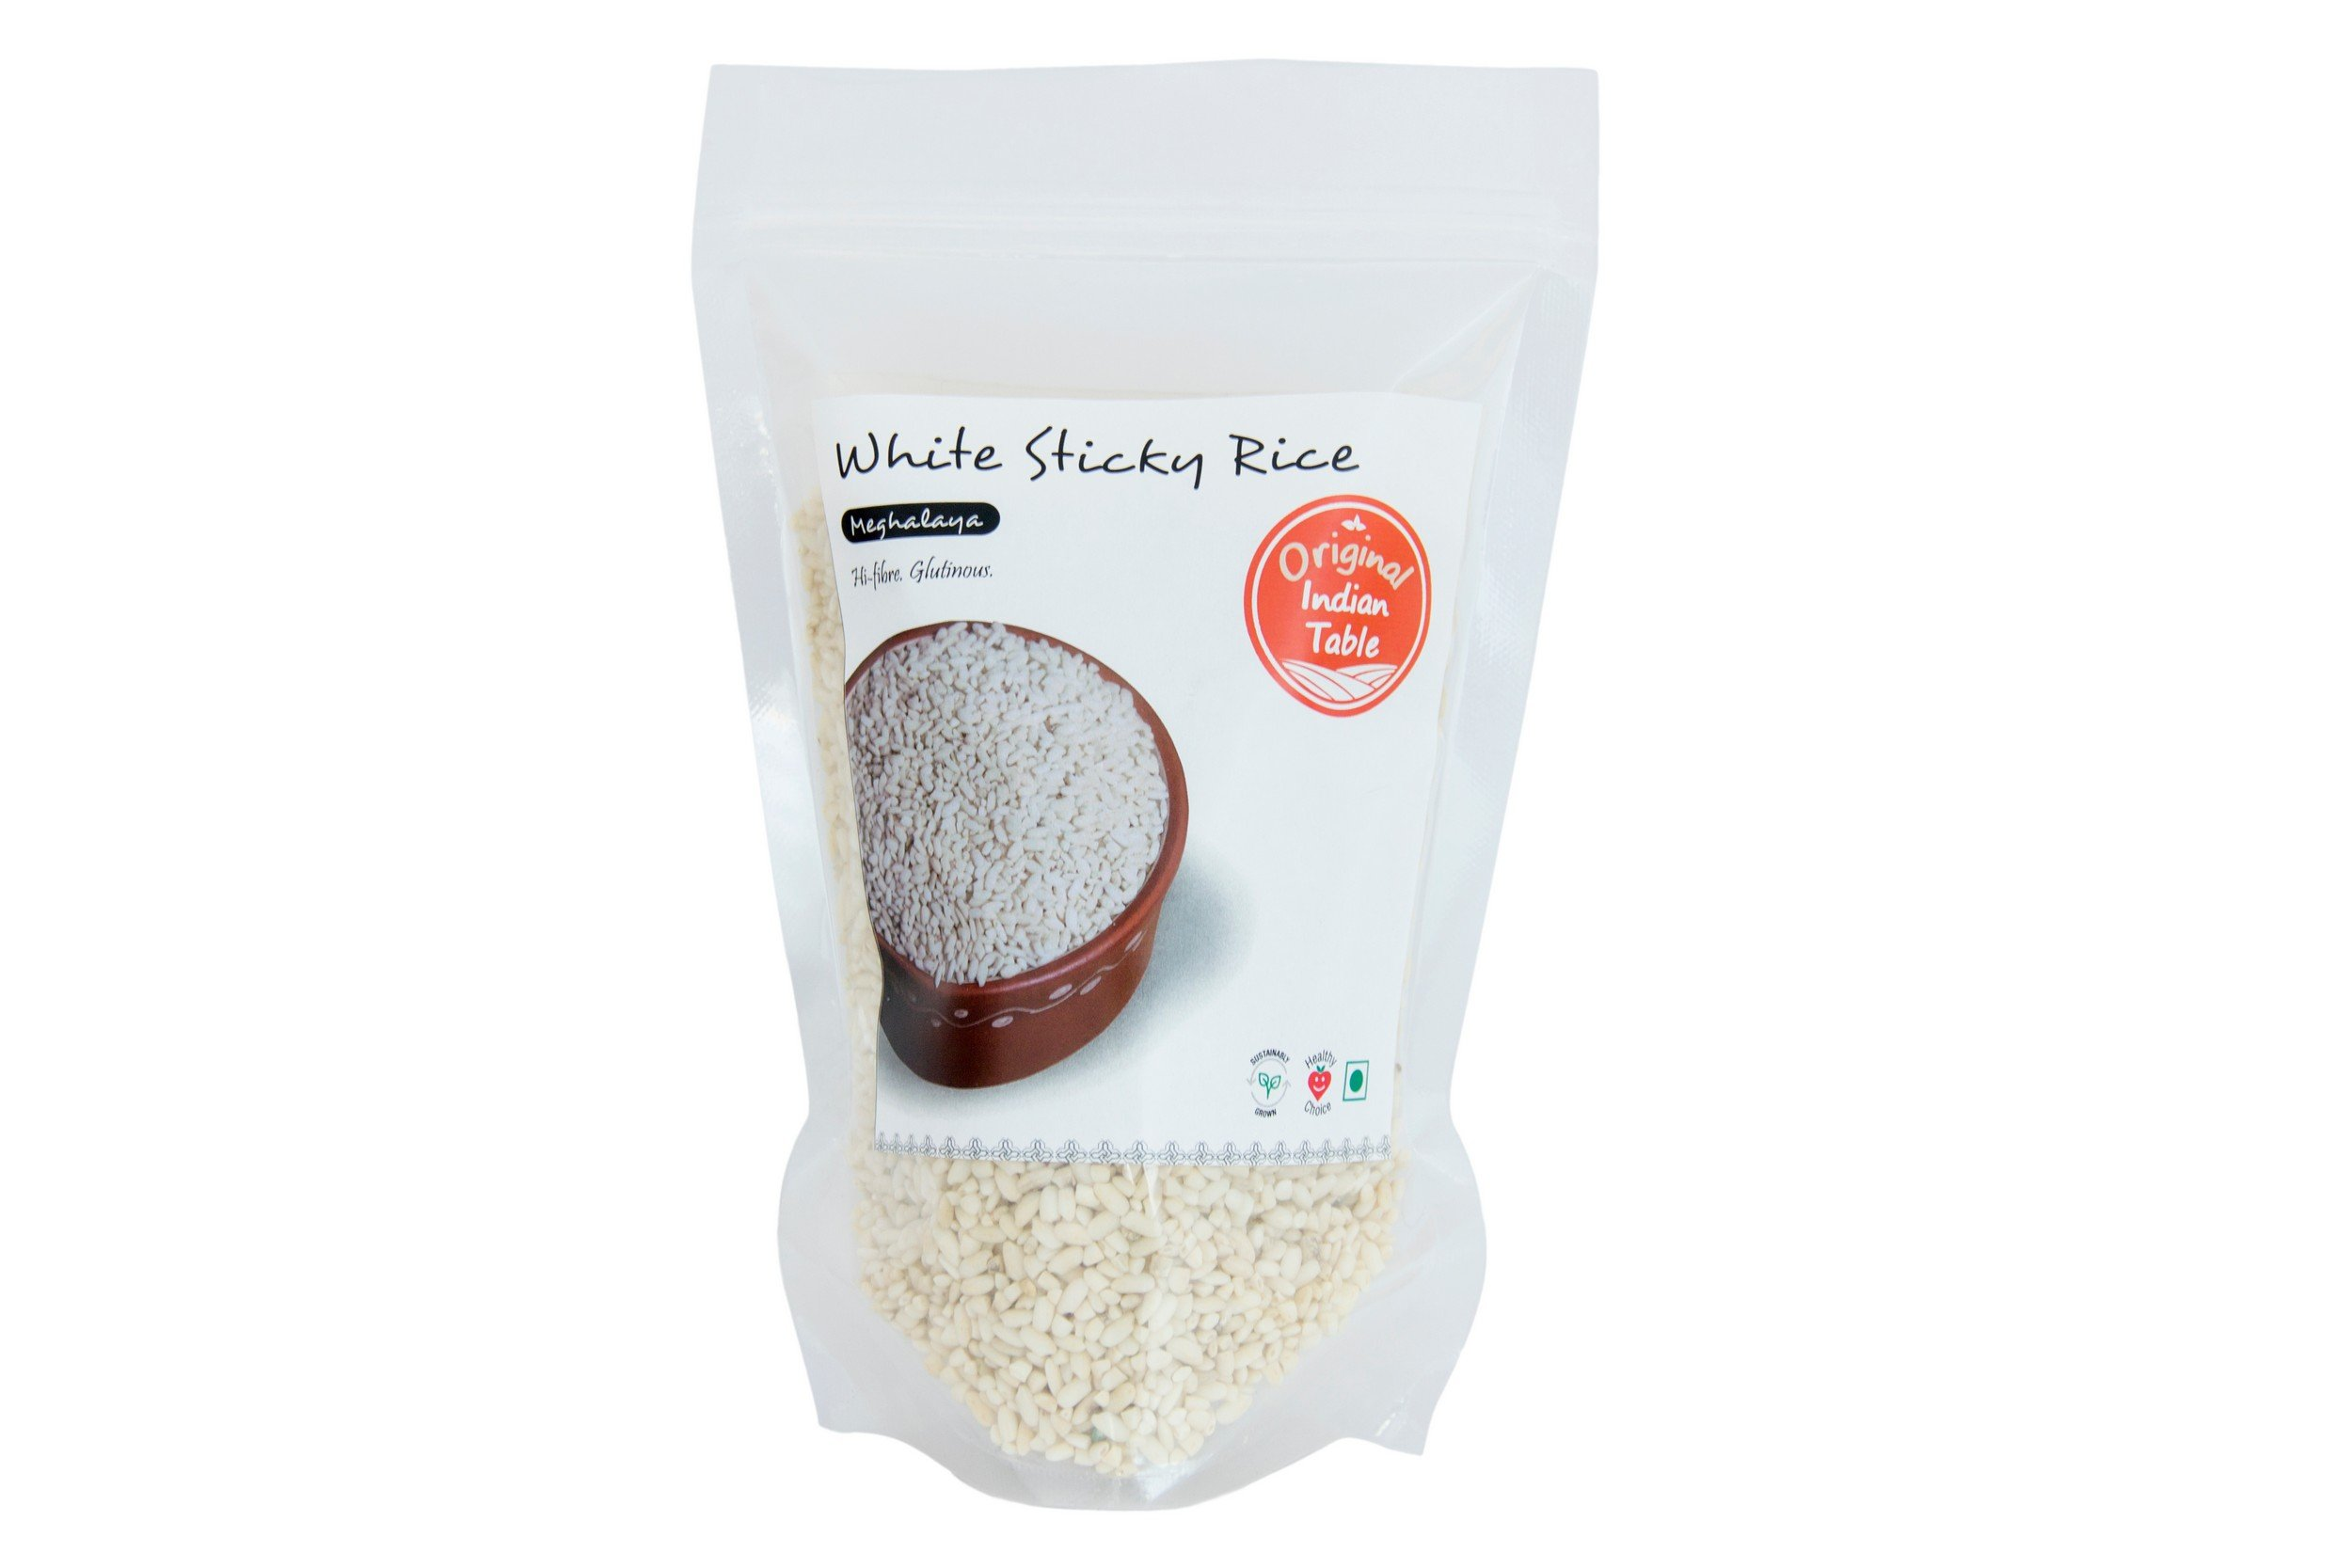 Original Indian Table White Sticky Rice, 400g (B0743JQ832) Amazon Price History, Amazon Price Tracker